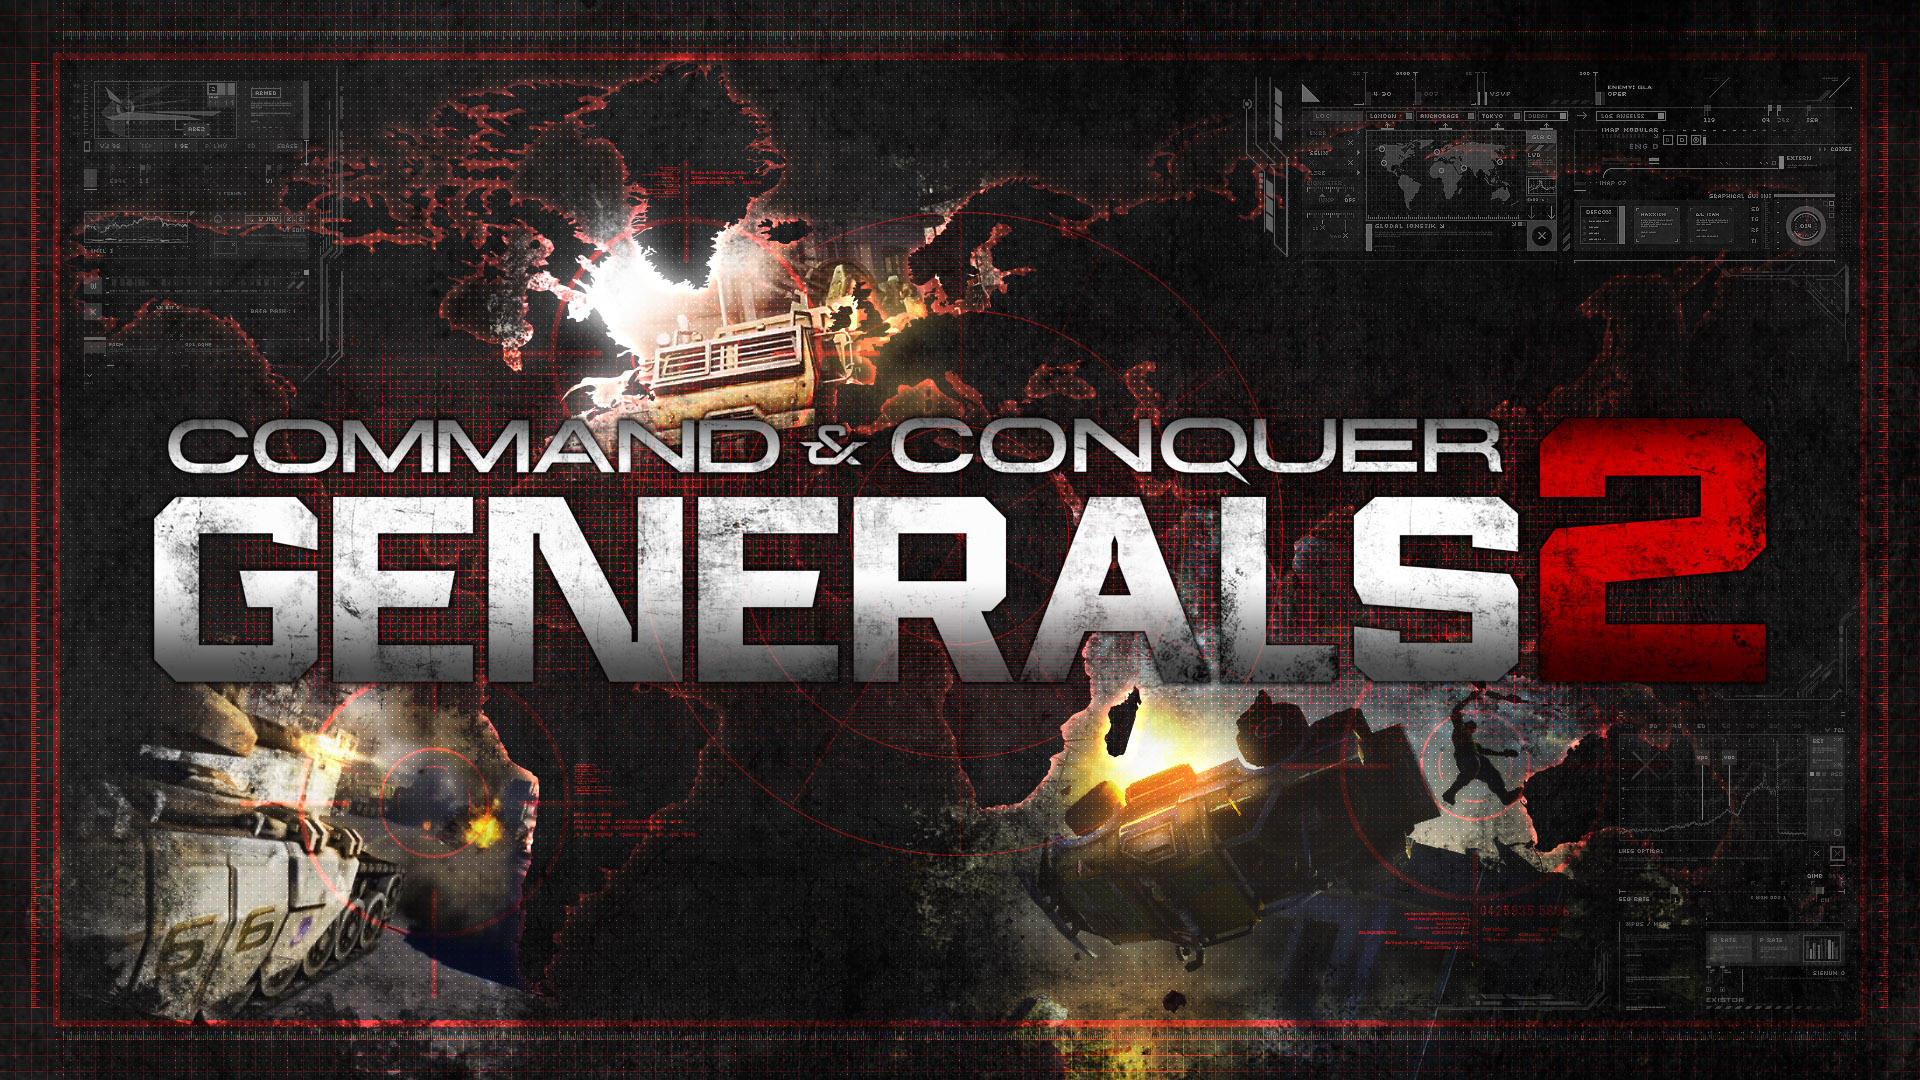 C&c Generals 2 - General Discussion - Official Command & Conquer ...